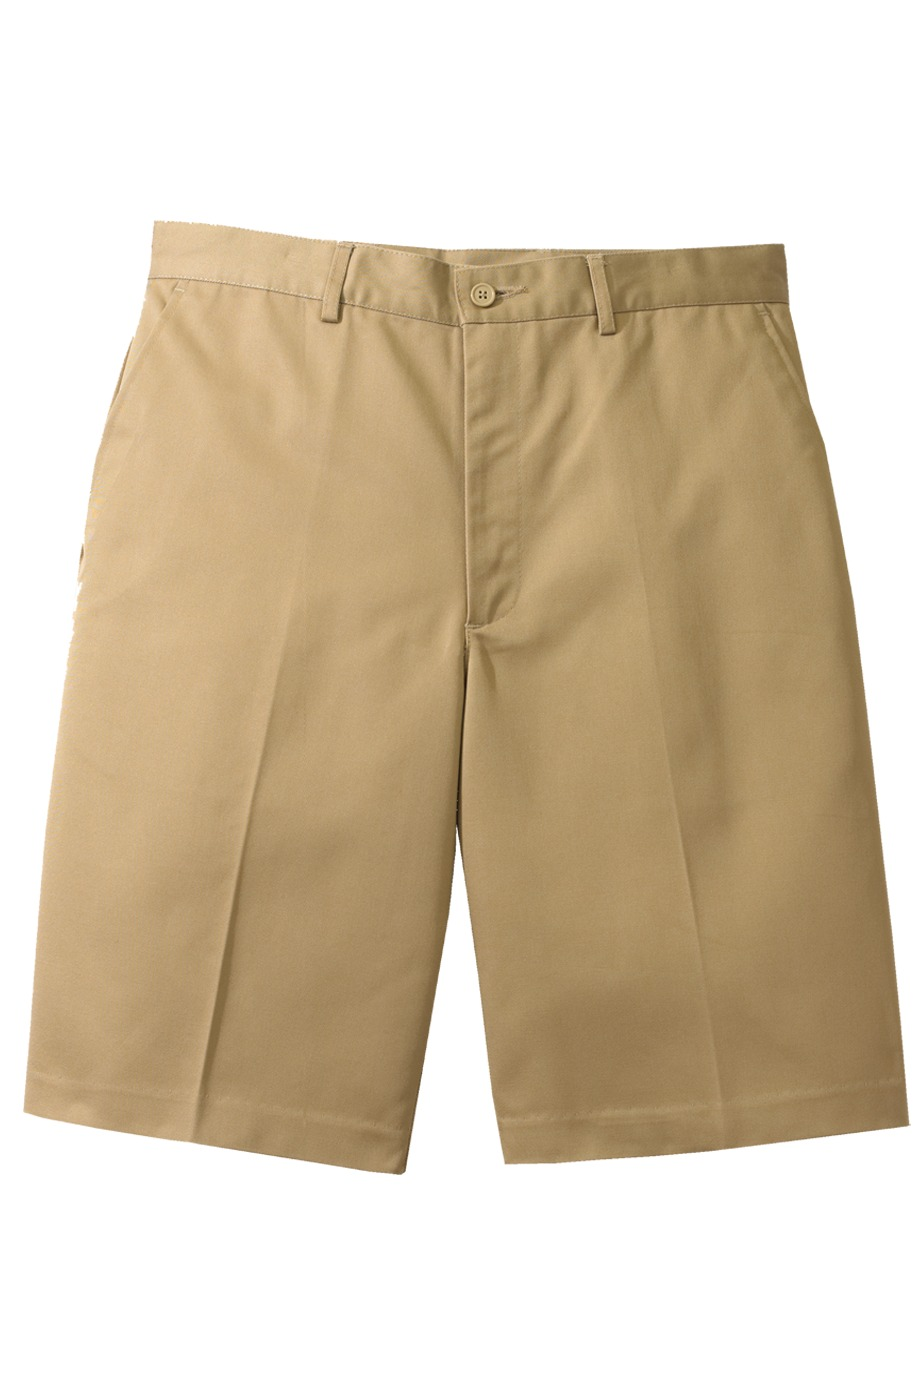 Edwards Garment 2487 - Men's Flat Front Chino Short